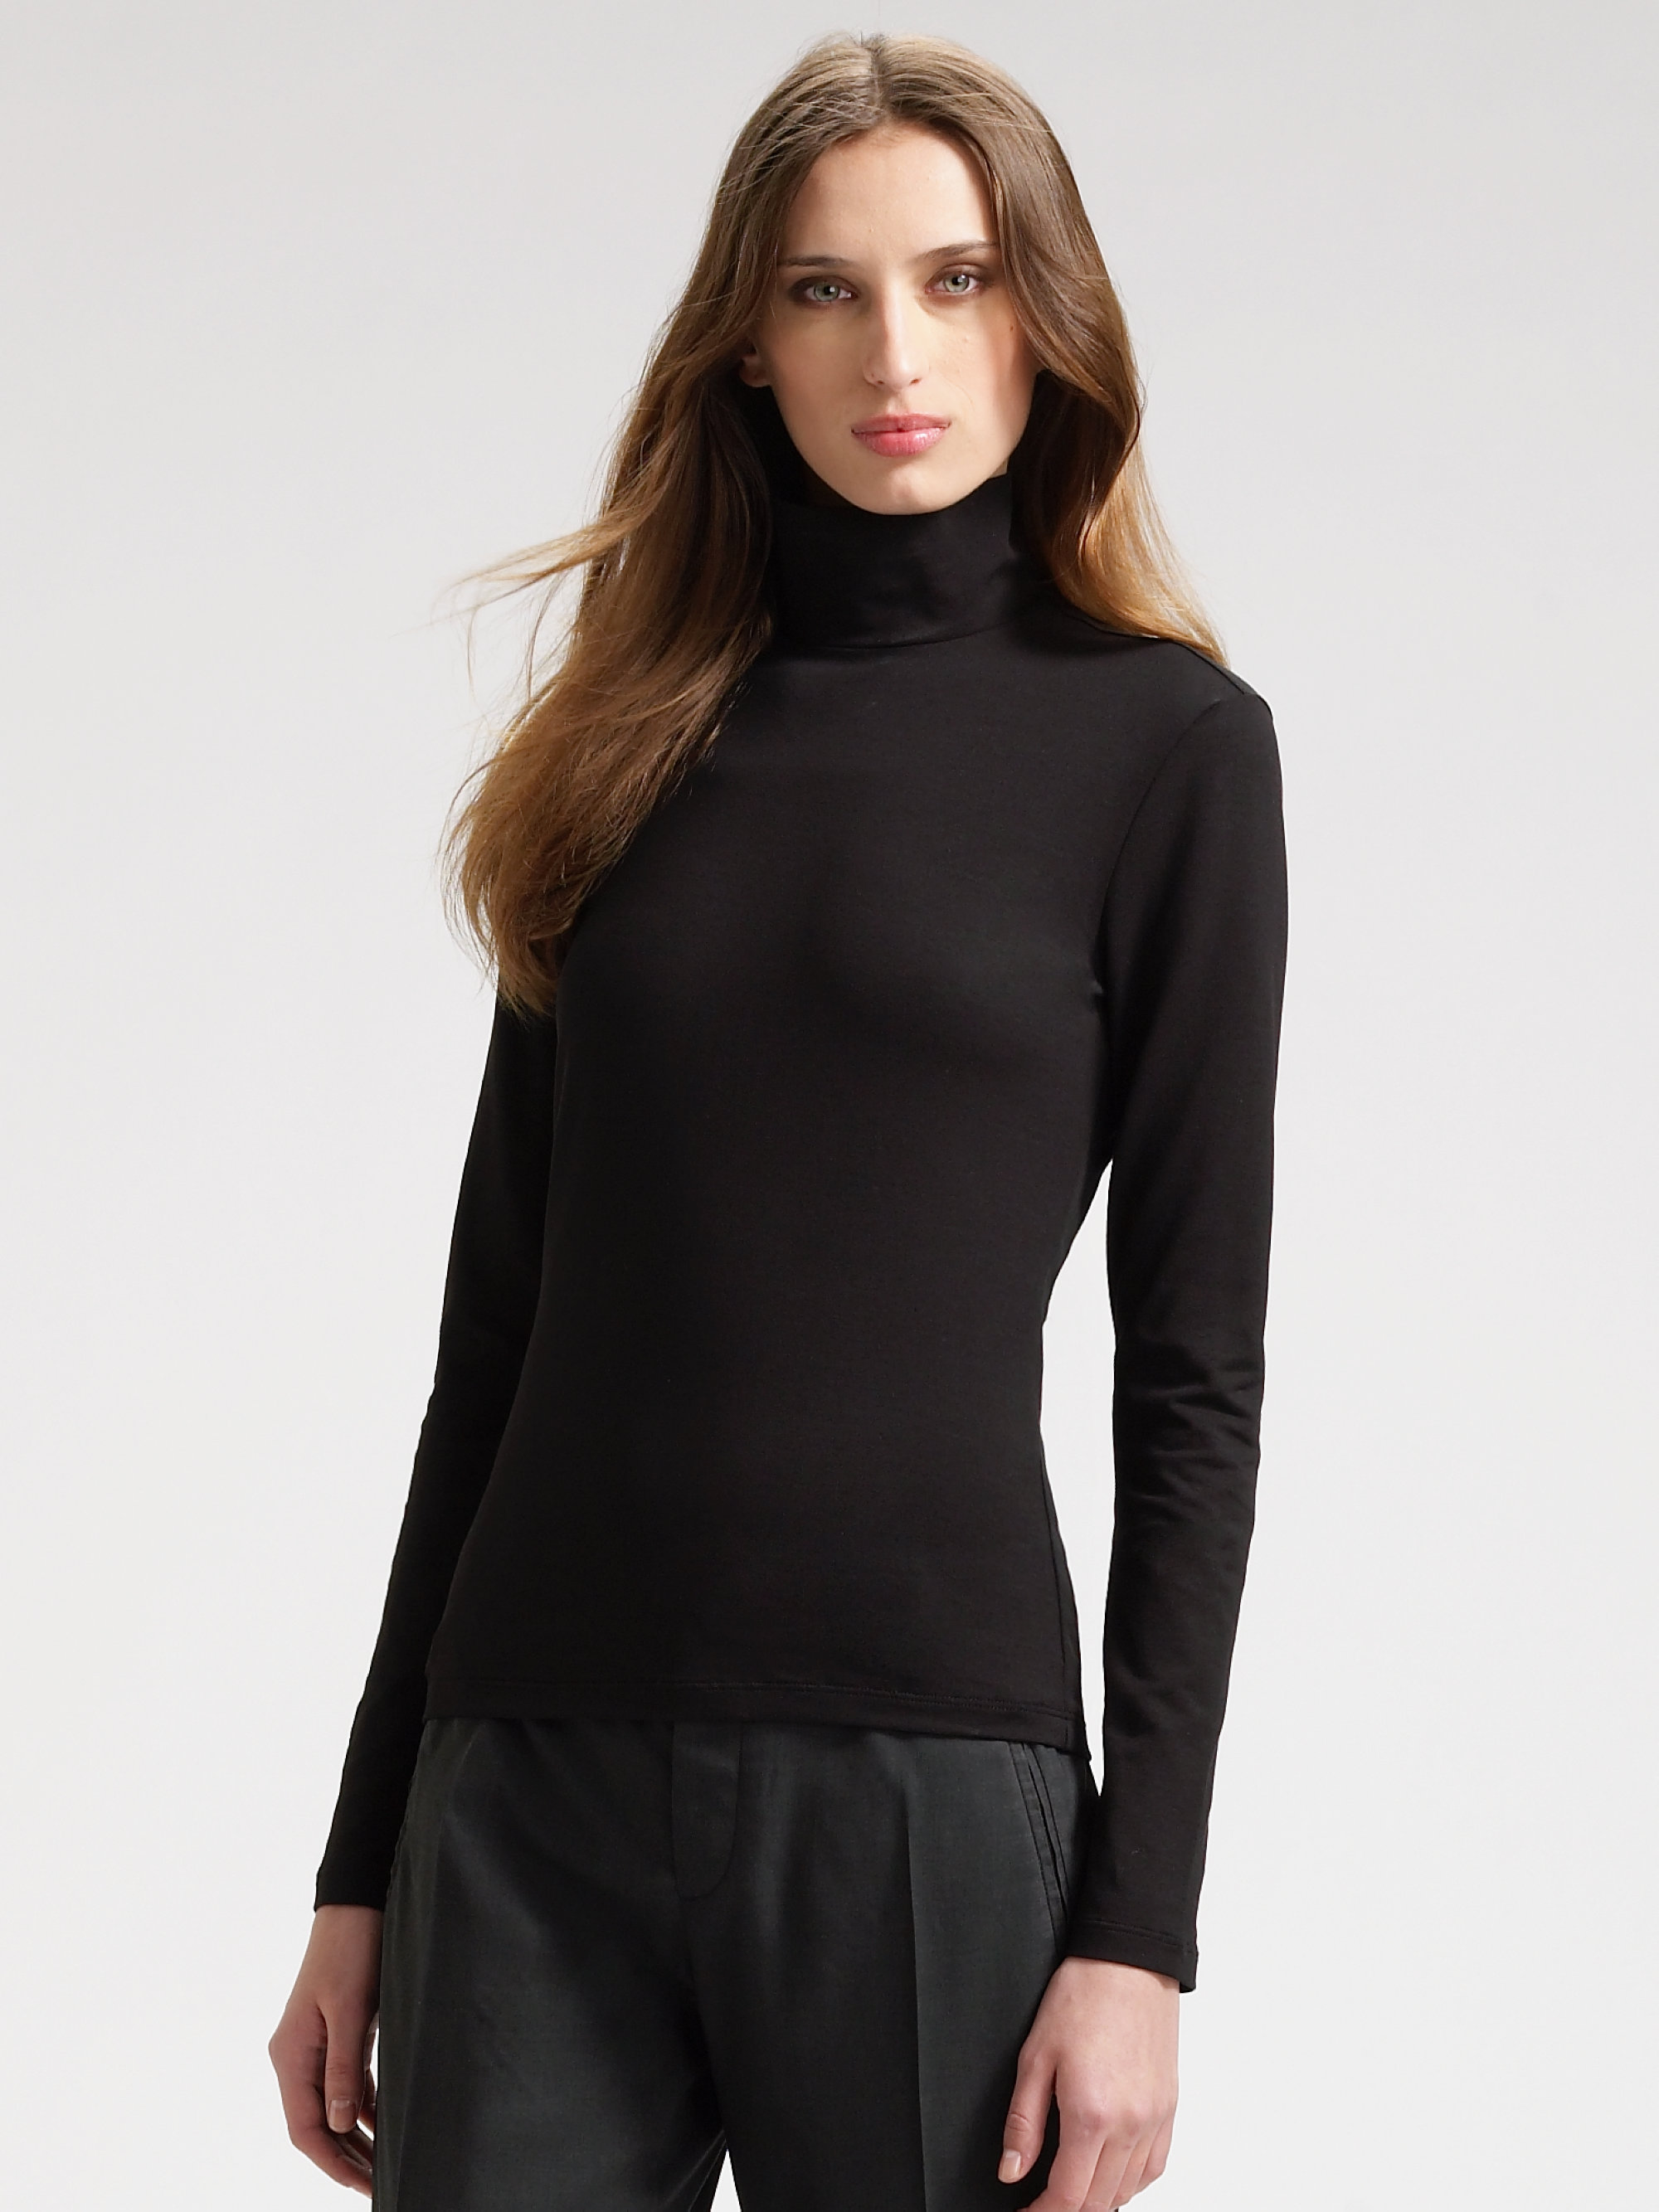 Oct 03, · I am obsessed with turtlenecks — I have enough to fill my chest of drawers. OK, maybe not that many, but I do have a lot. The style keeps me extracozyHome Country: San Francisco, CA.